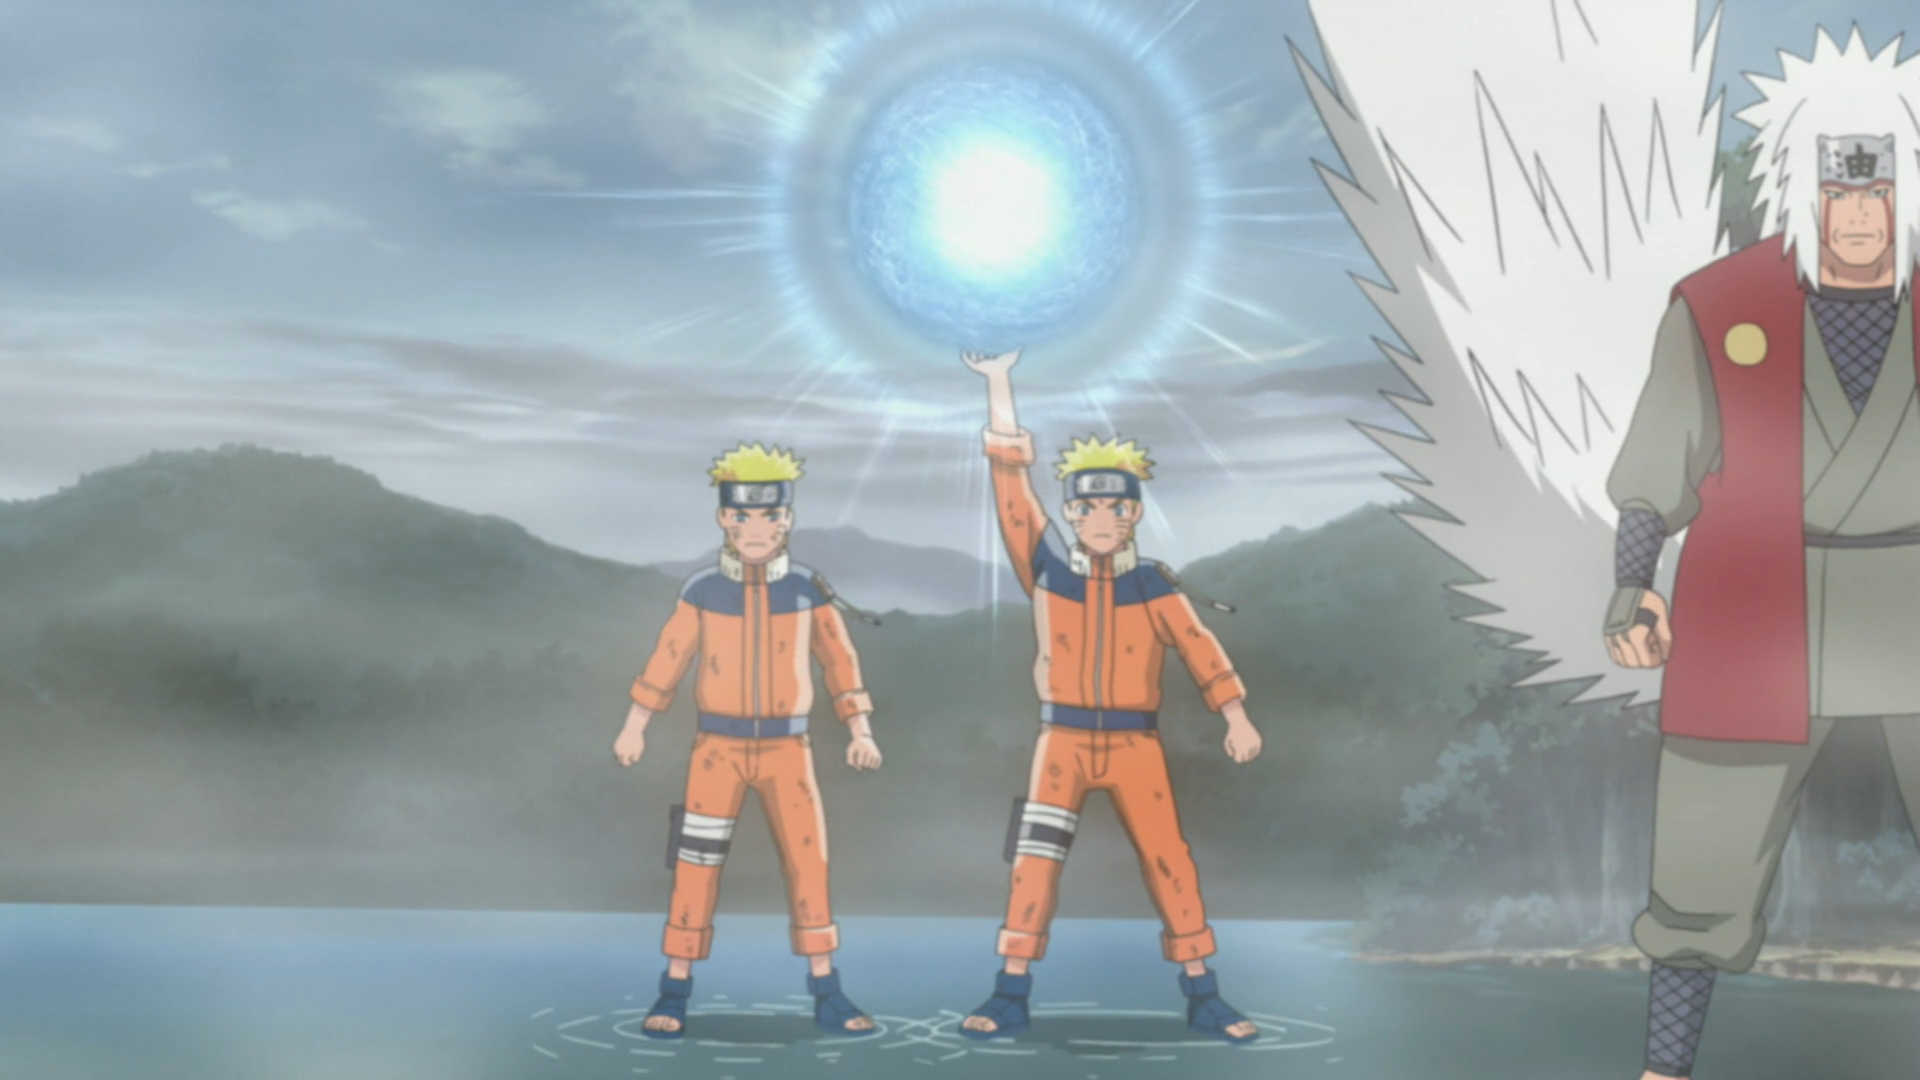 naruto sage rasengan. In Sage Mode, stronger